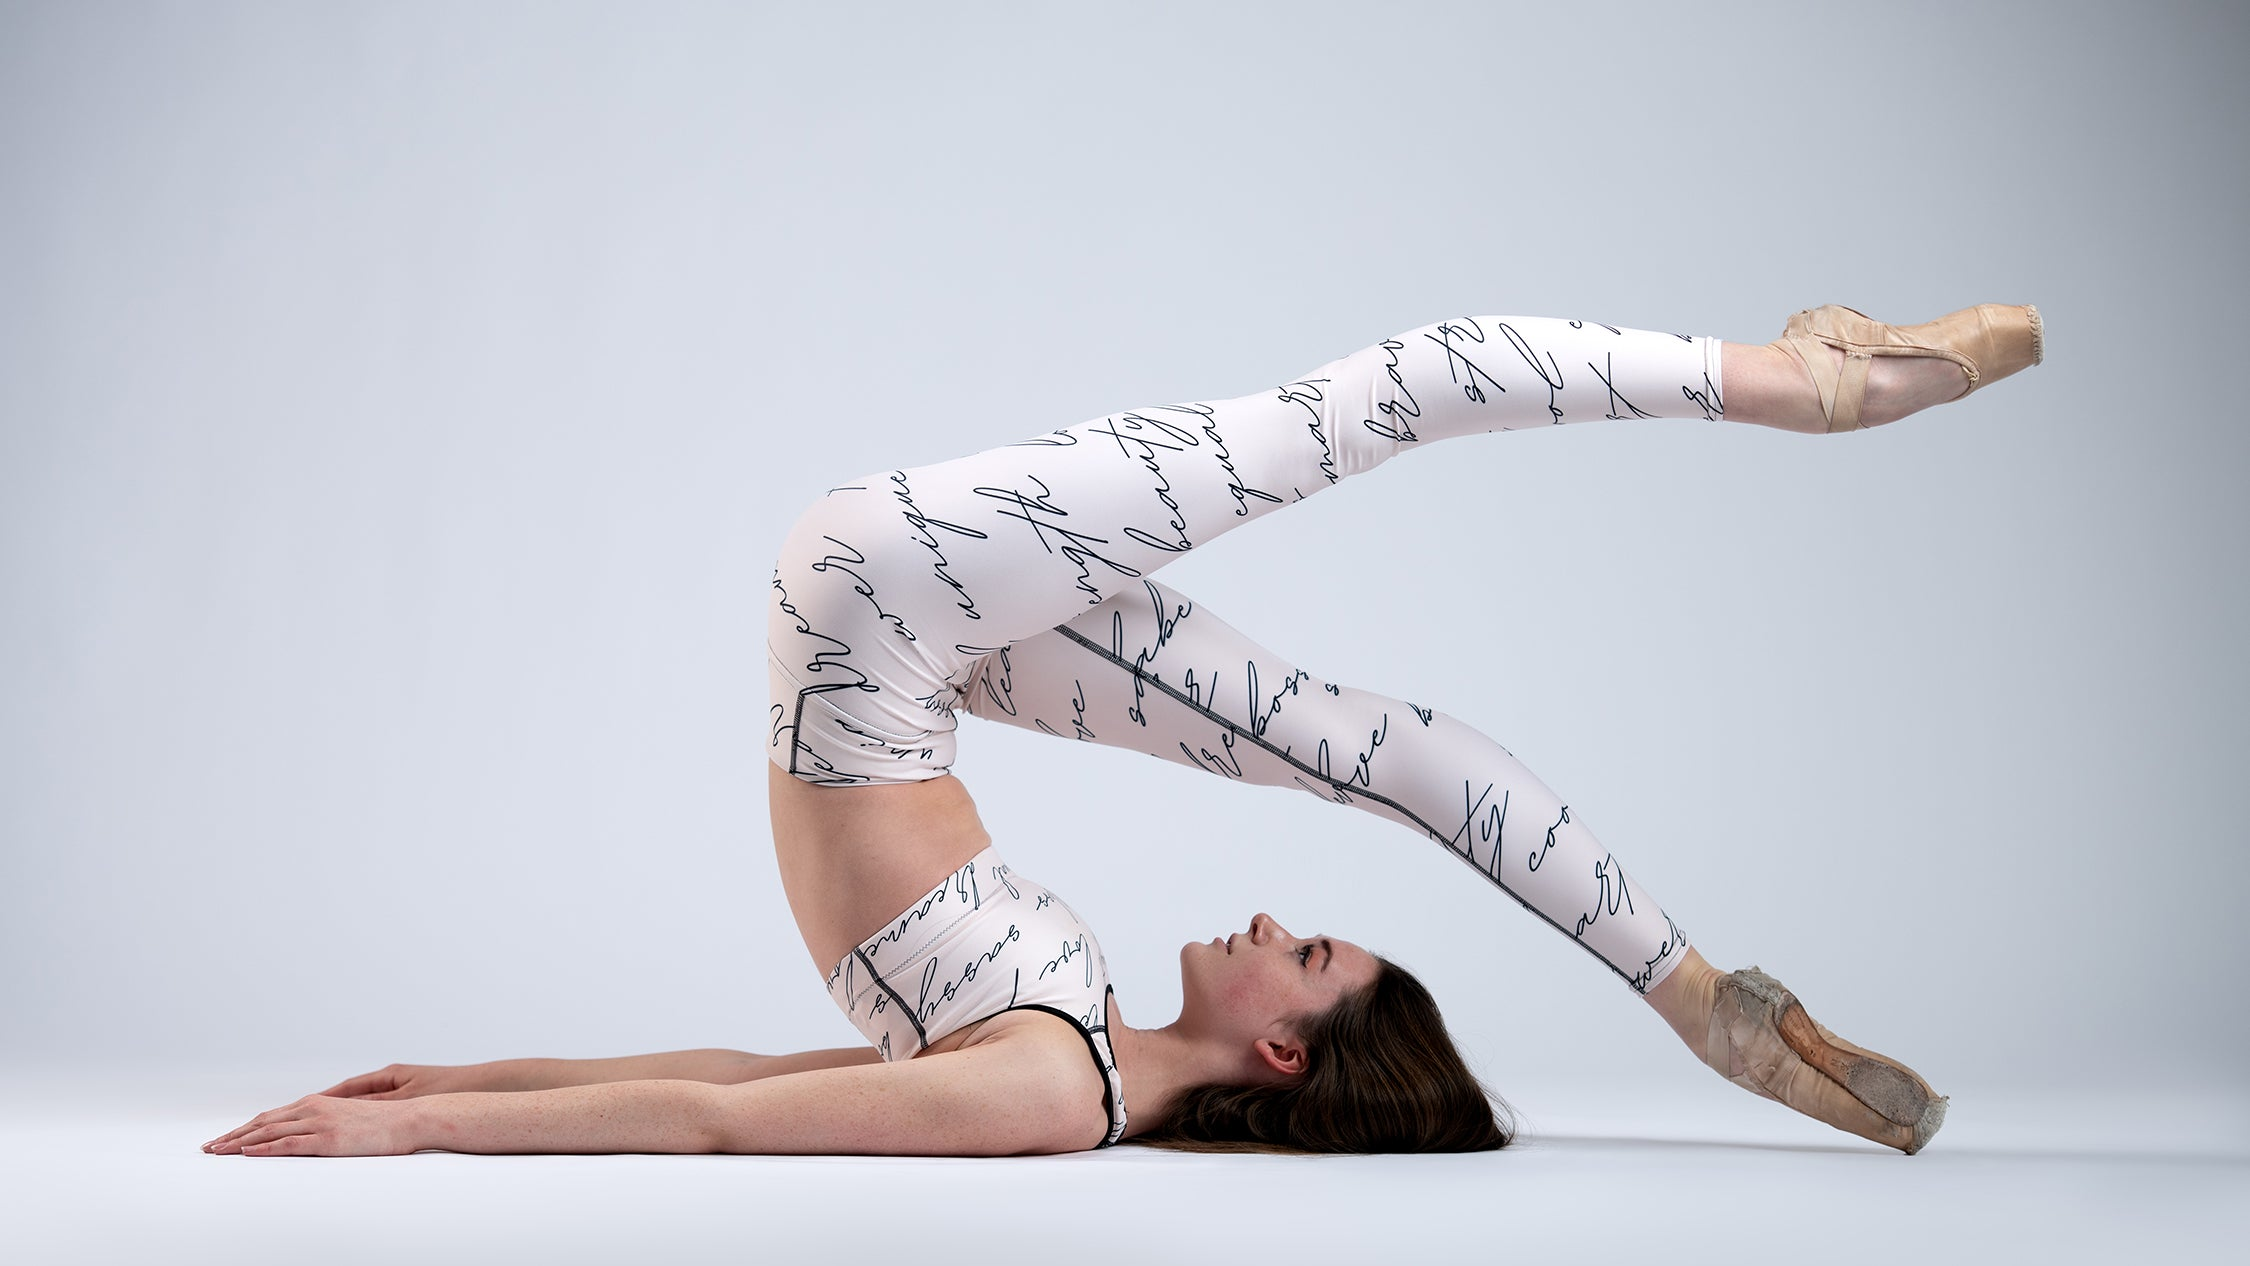 The Cool Ppl activewear on a ballerina with powerful words for women supporting women.